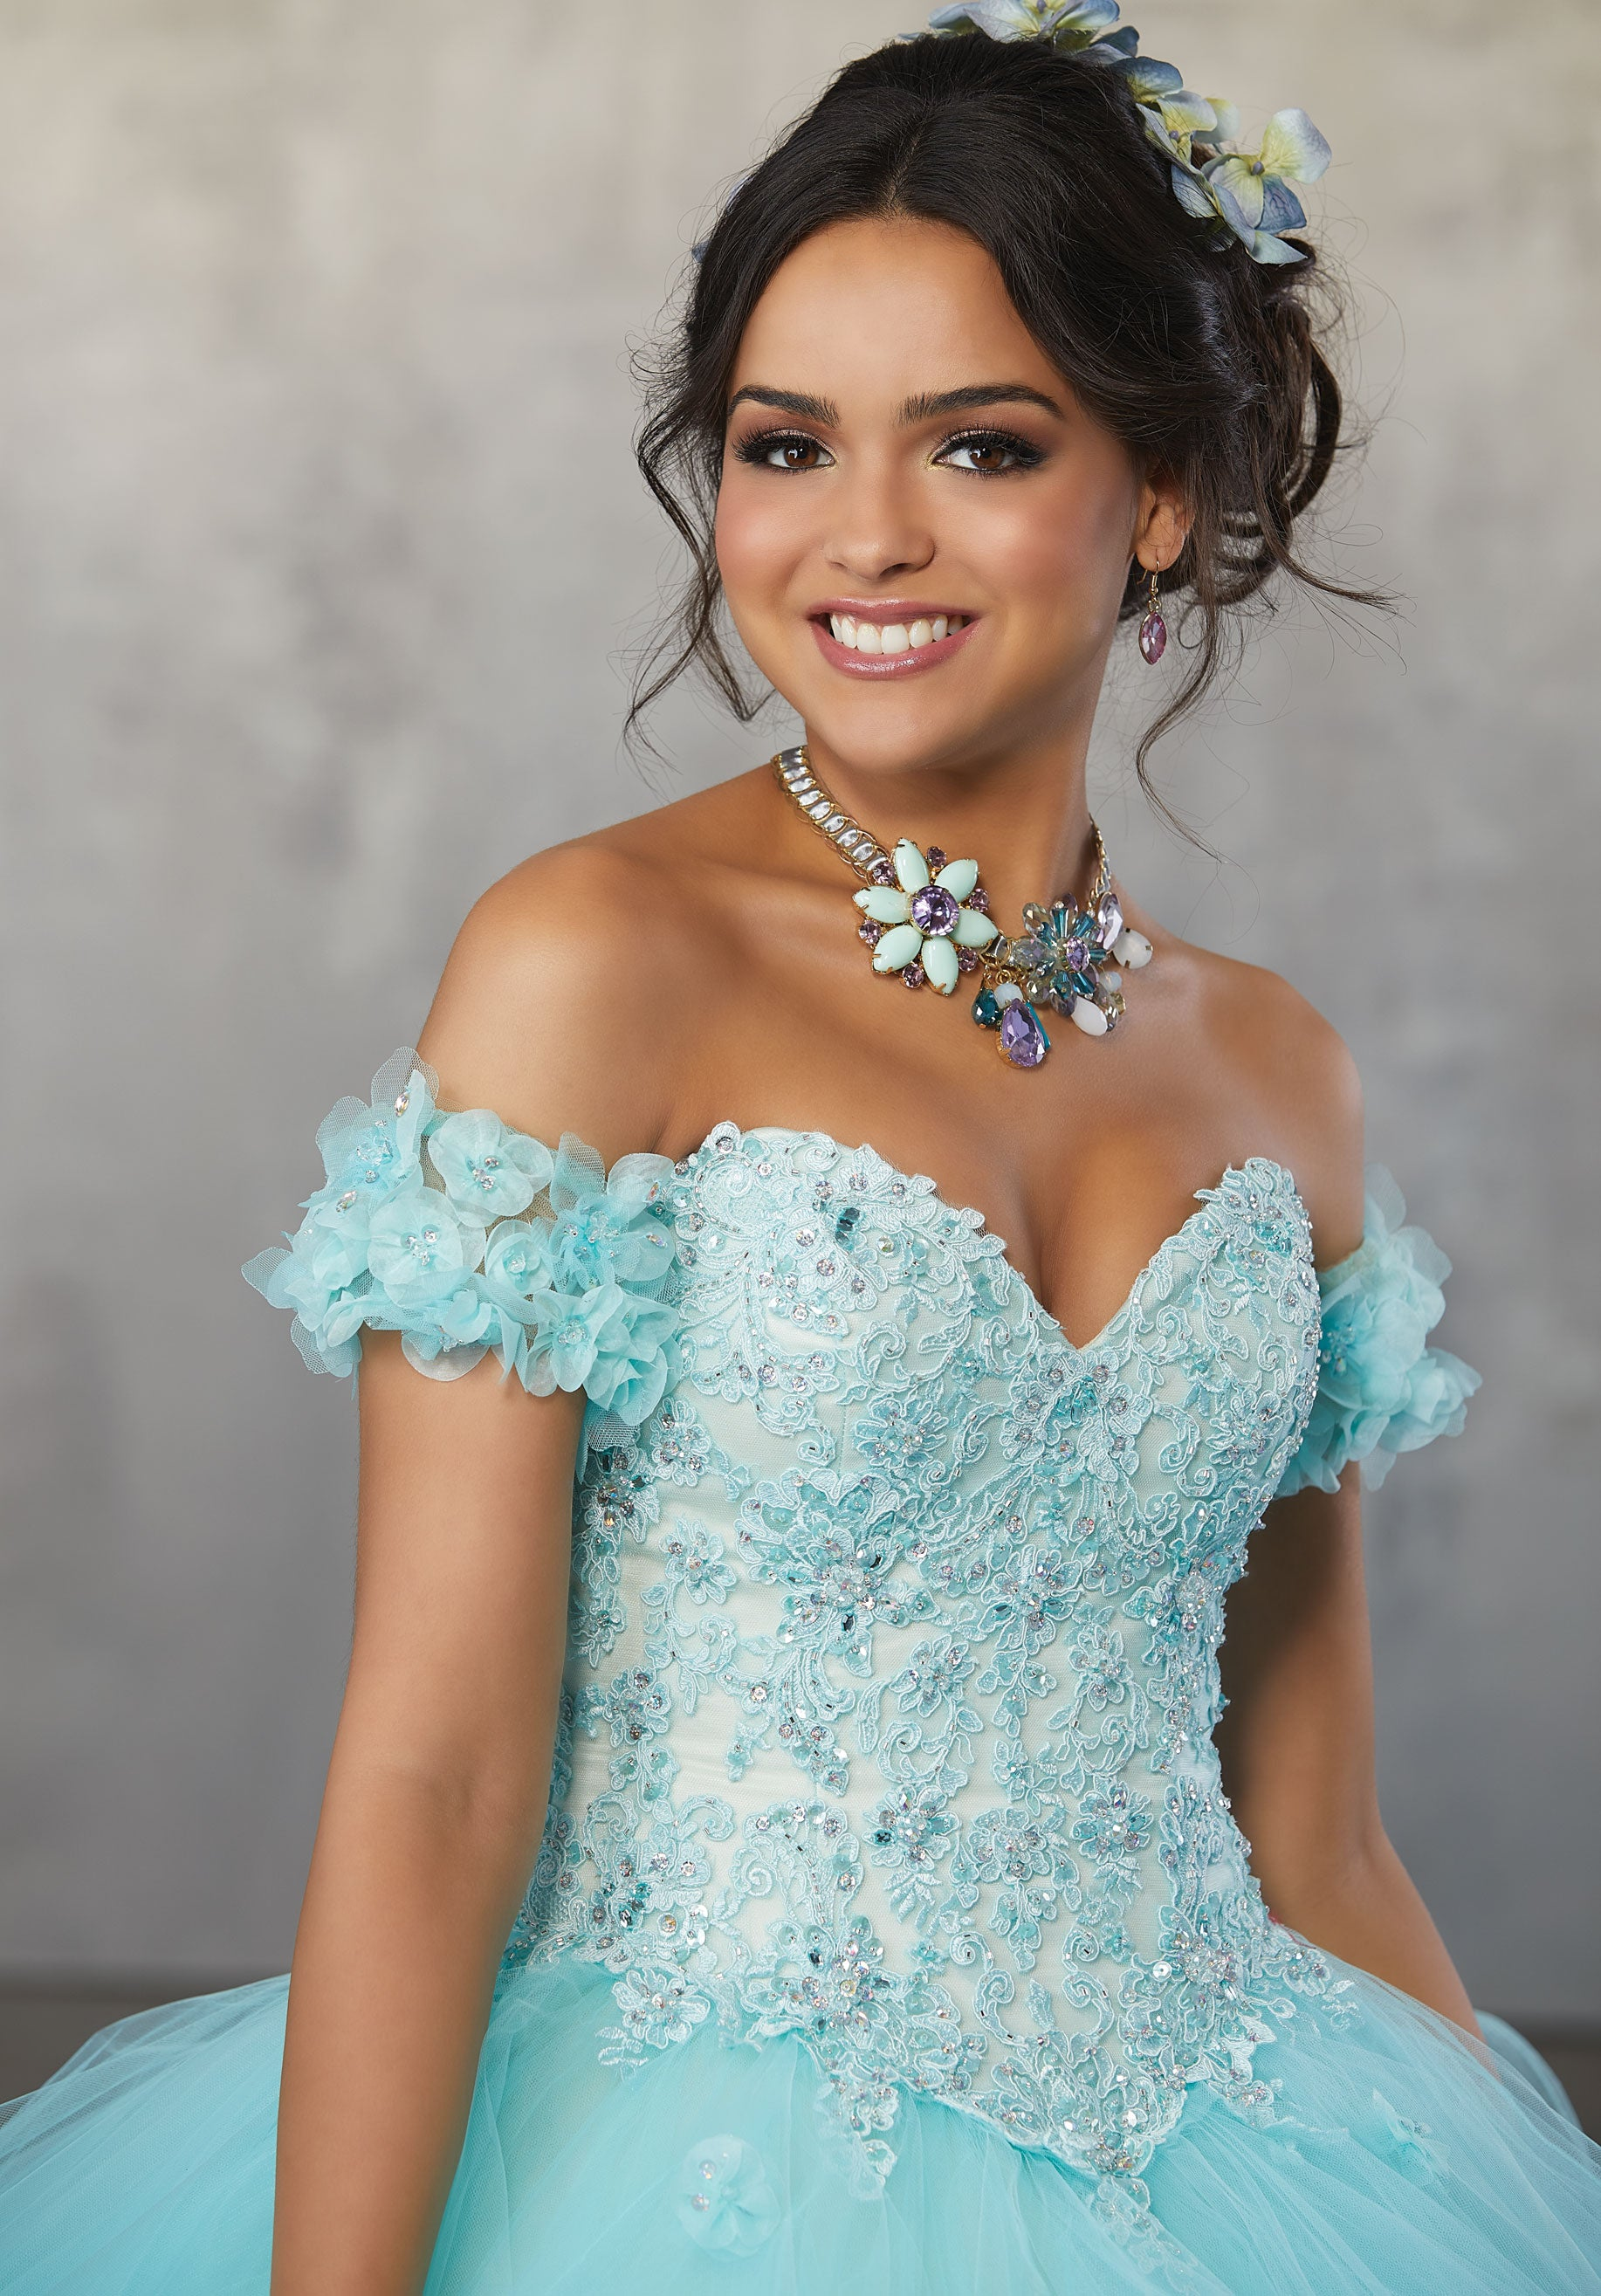 78063 Crystal Beaded Quinceanera Dress with Lace Appliqués and Three-Dimensional Flowers